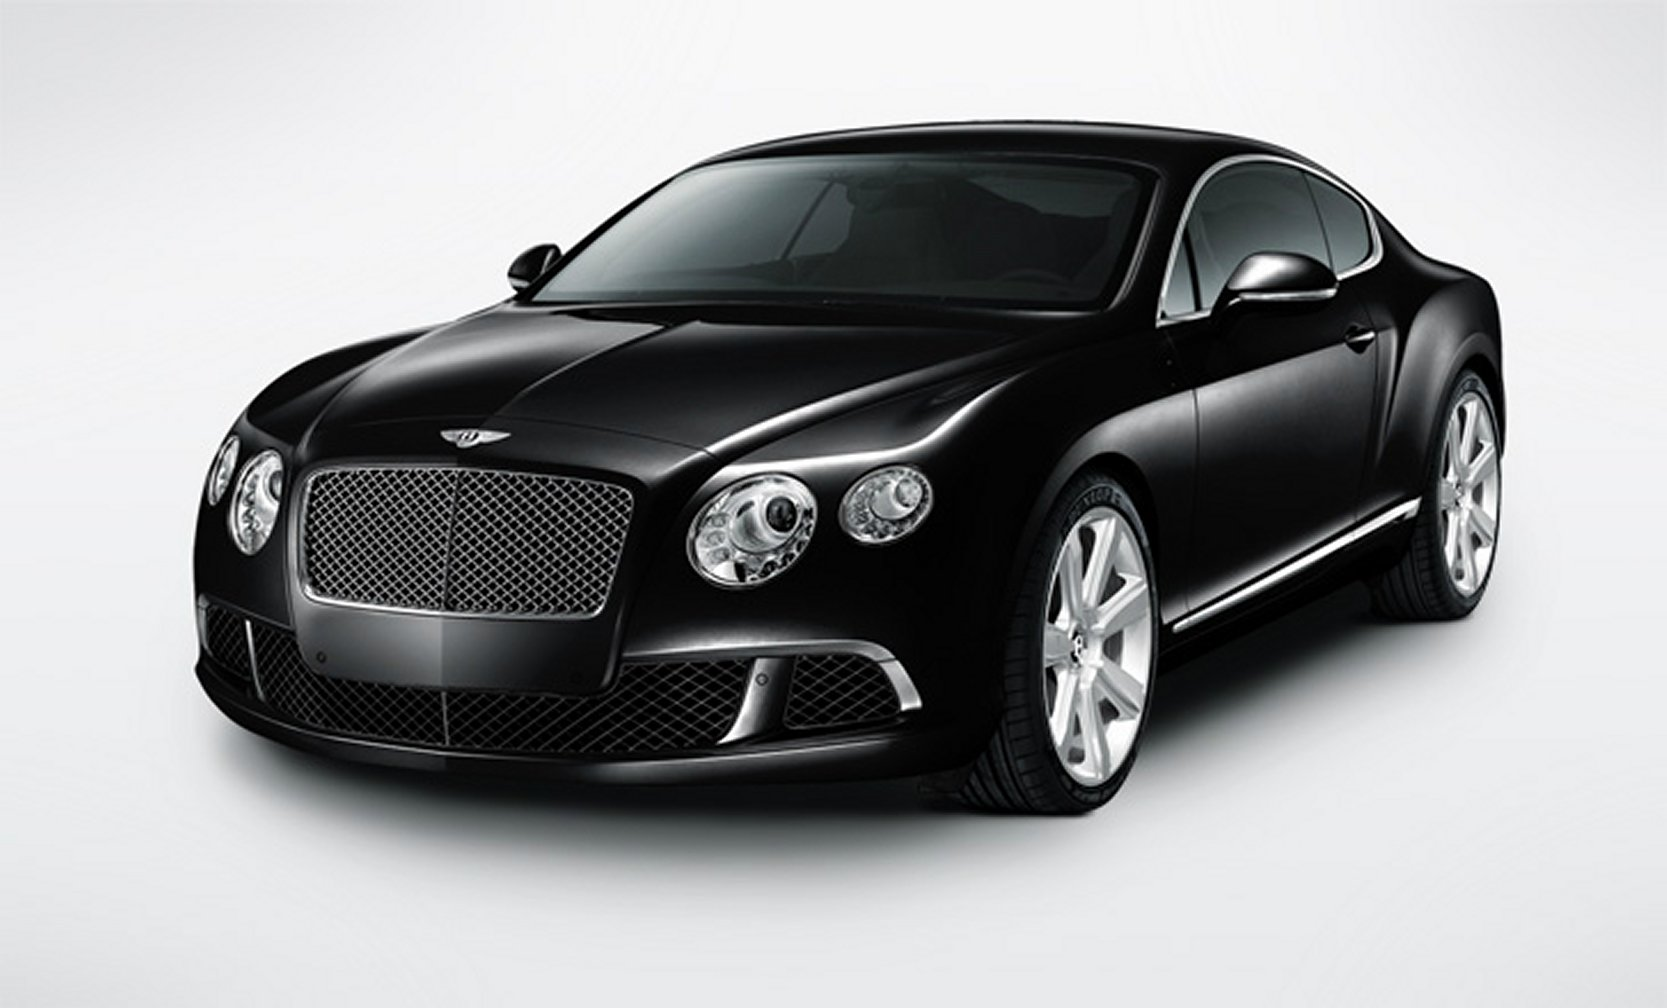 2010 Onyx Bentley Continental Platinum Gto Car News ...